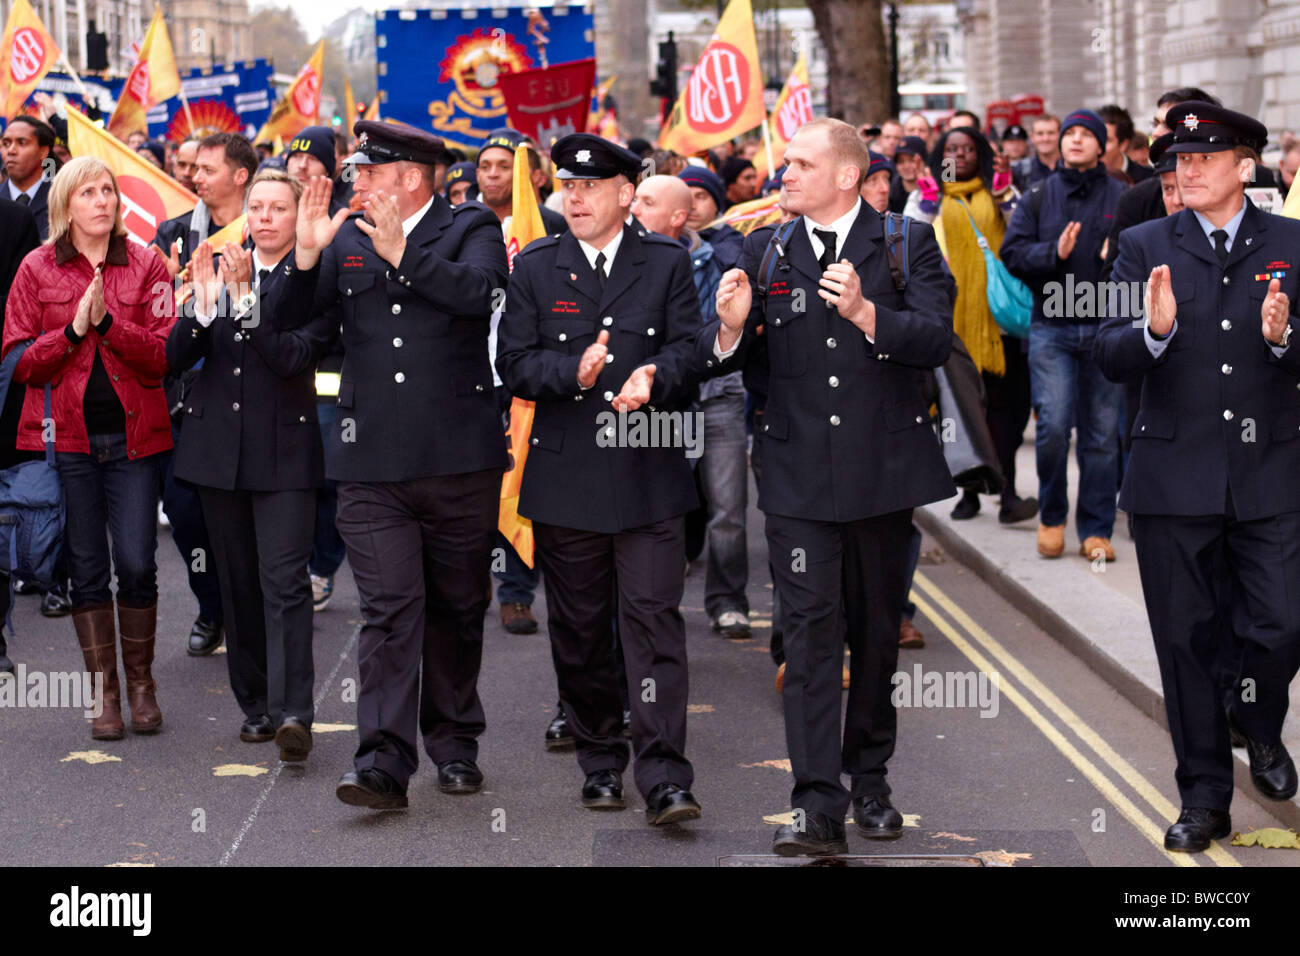 Firefighters march during an industrial dispute - Stock Image